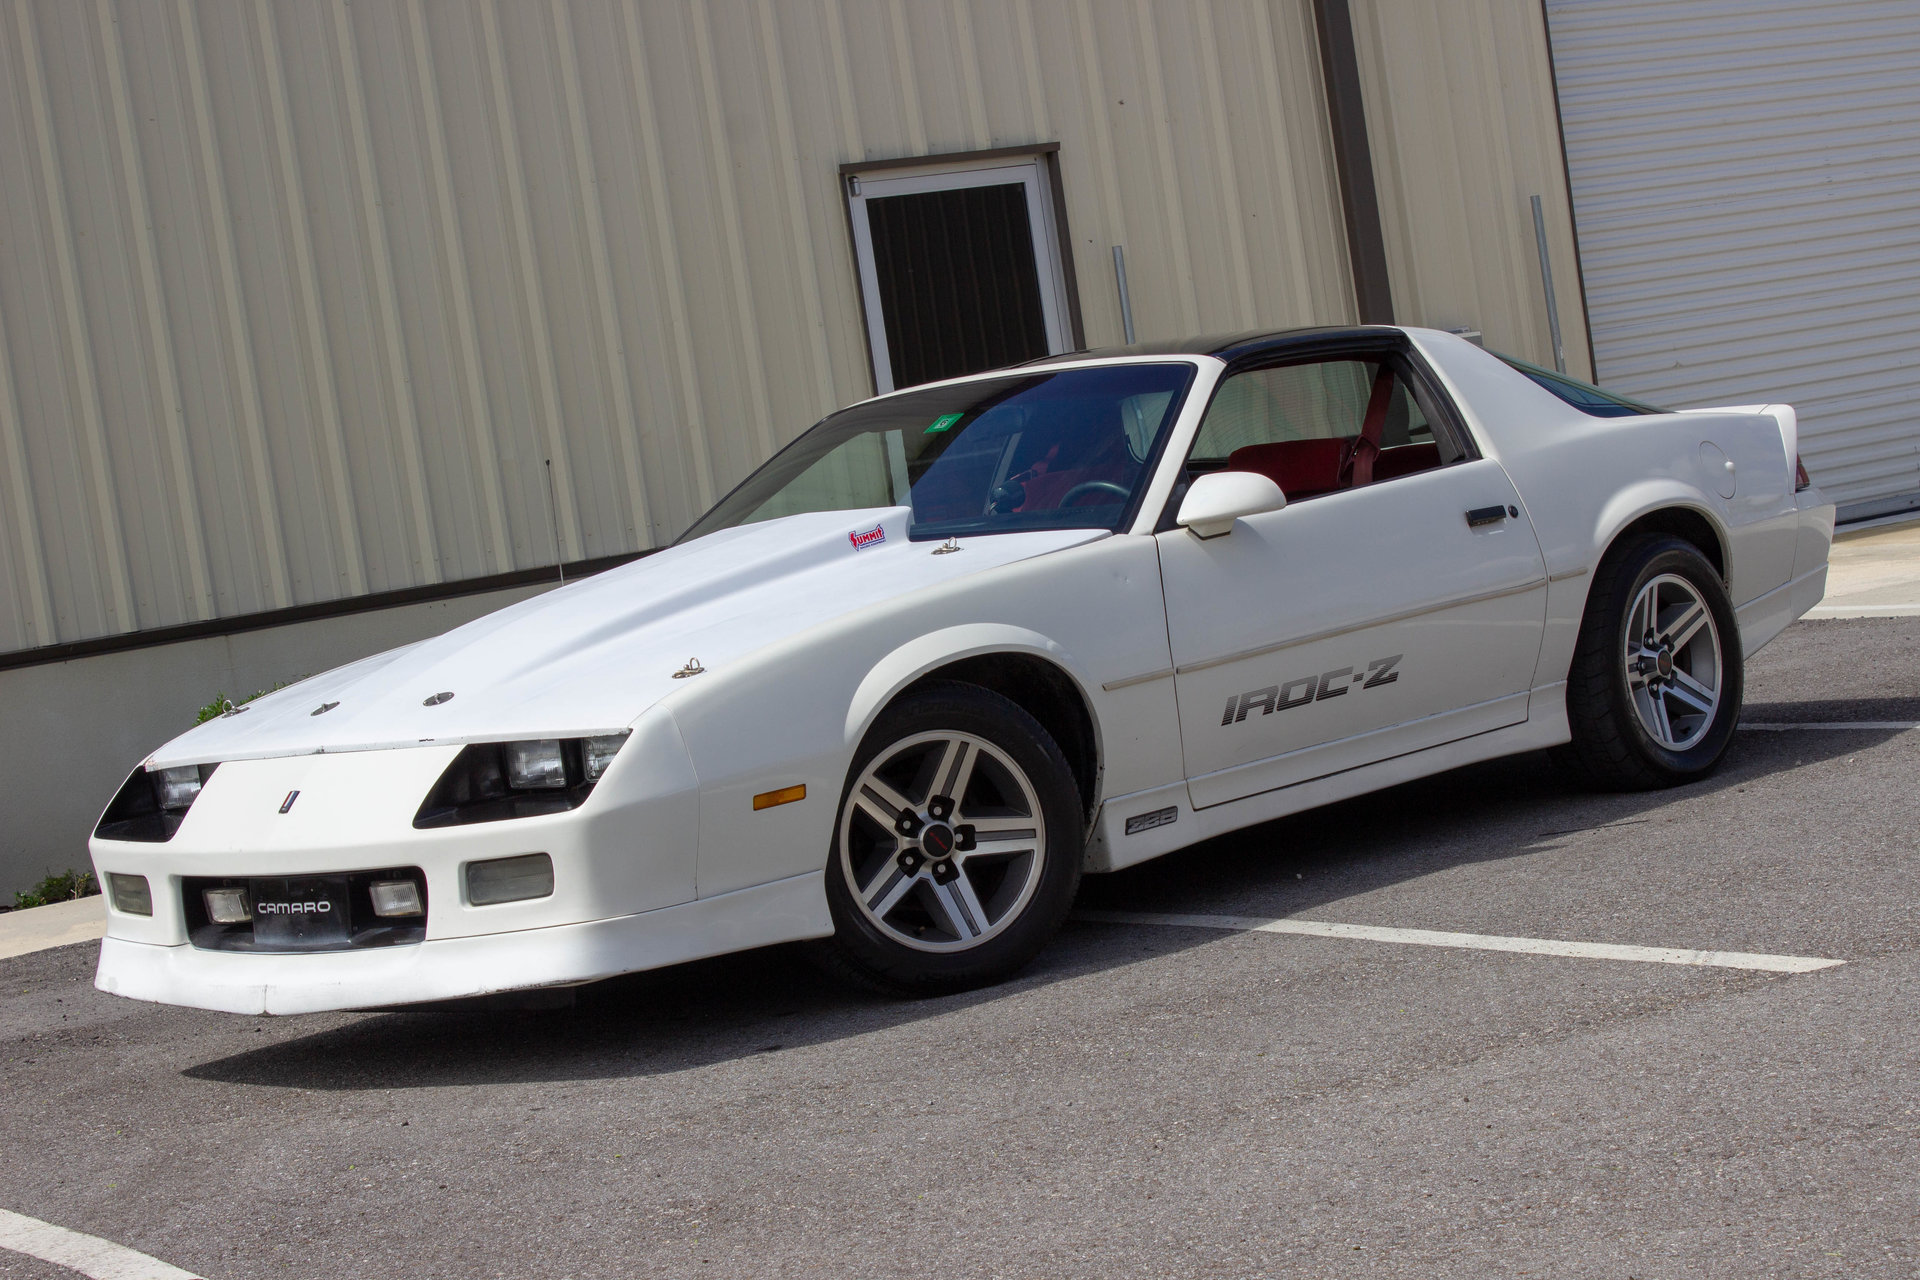 1986 Chevrolet Camaro Classic Cars Amp Used Cars For Sale